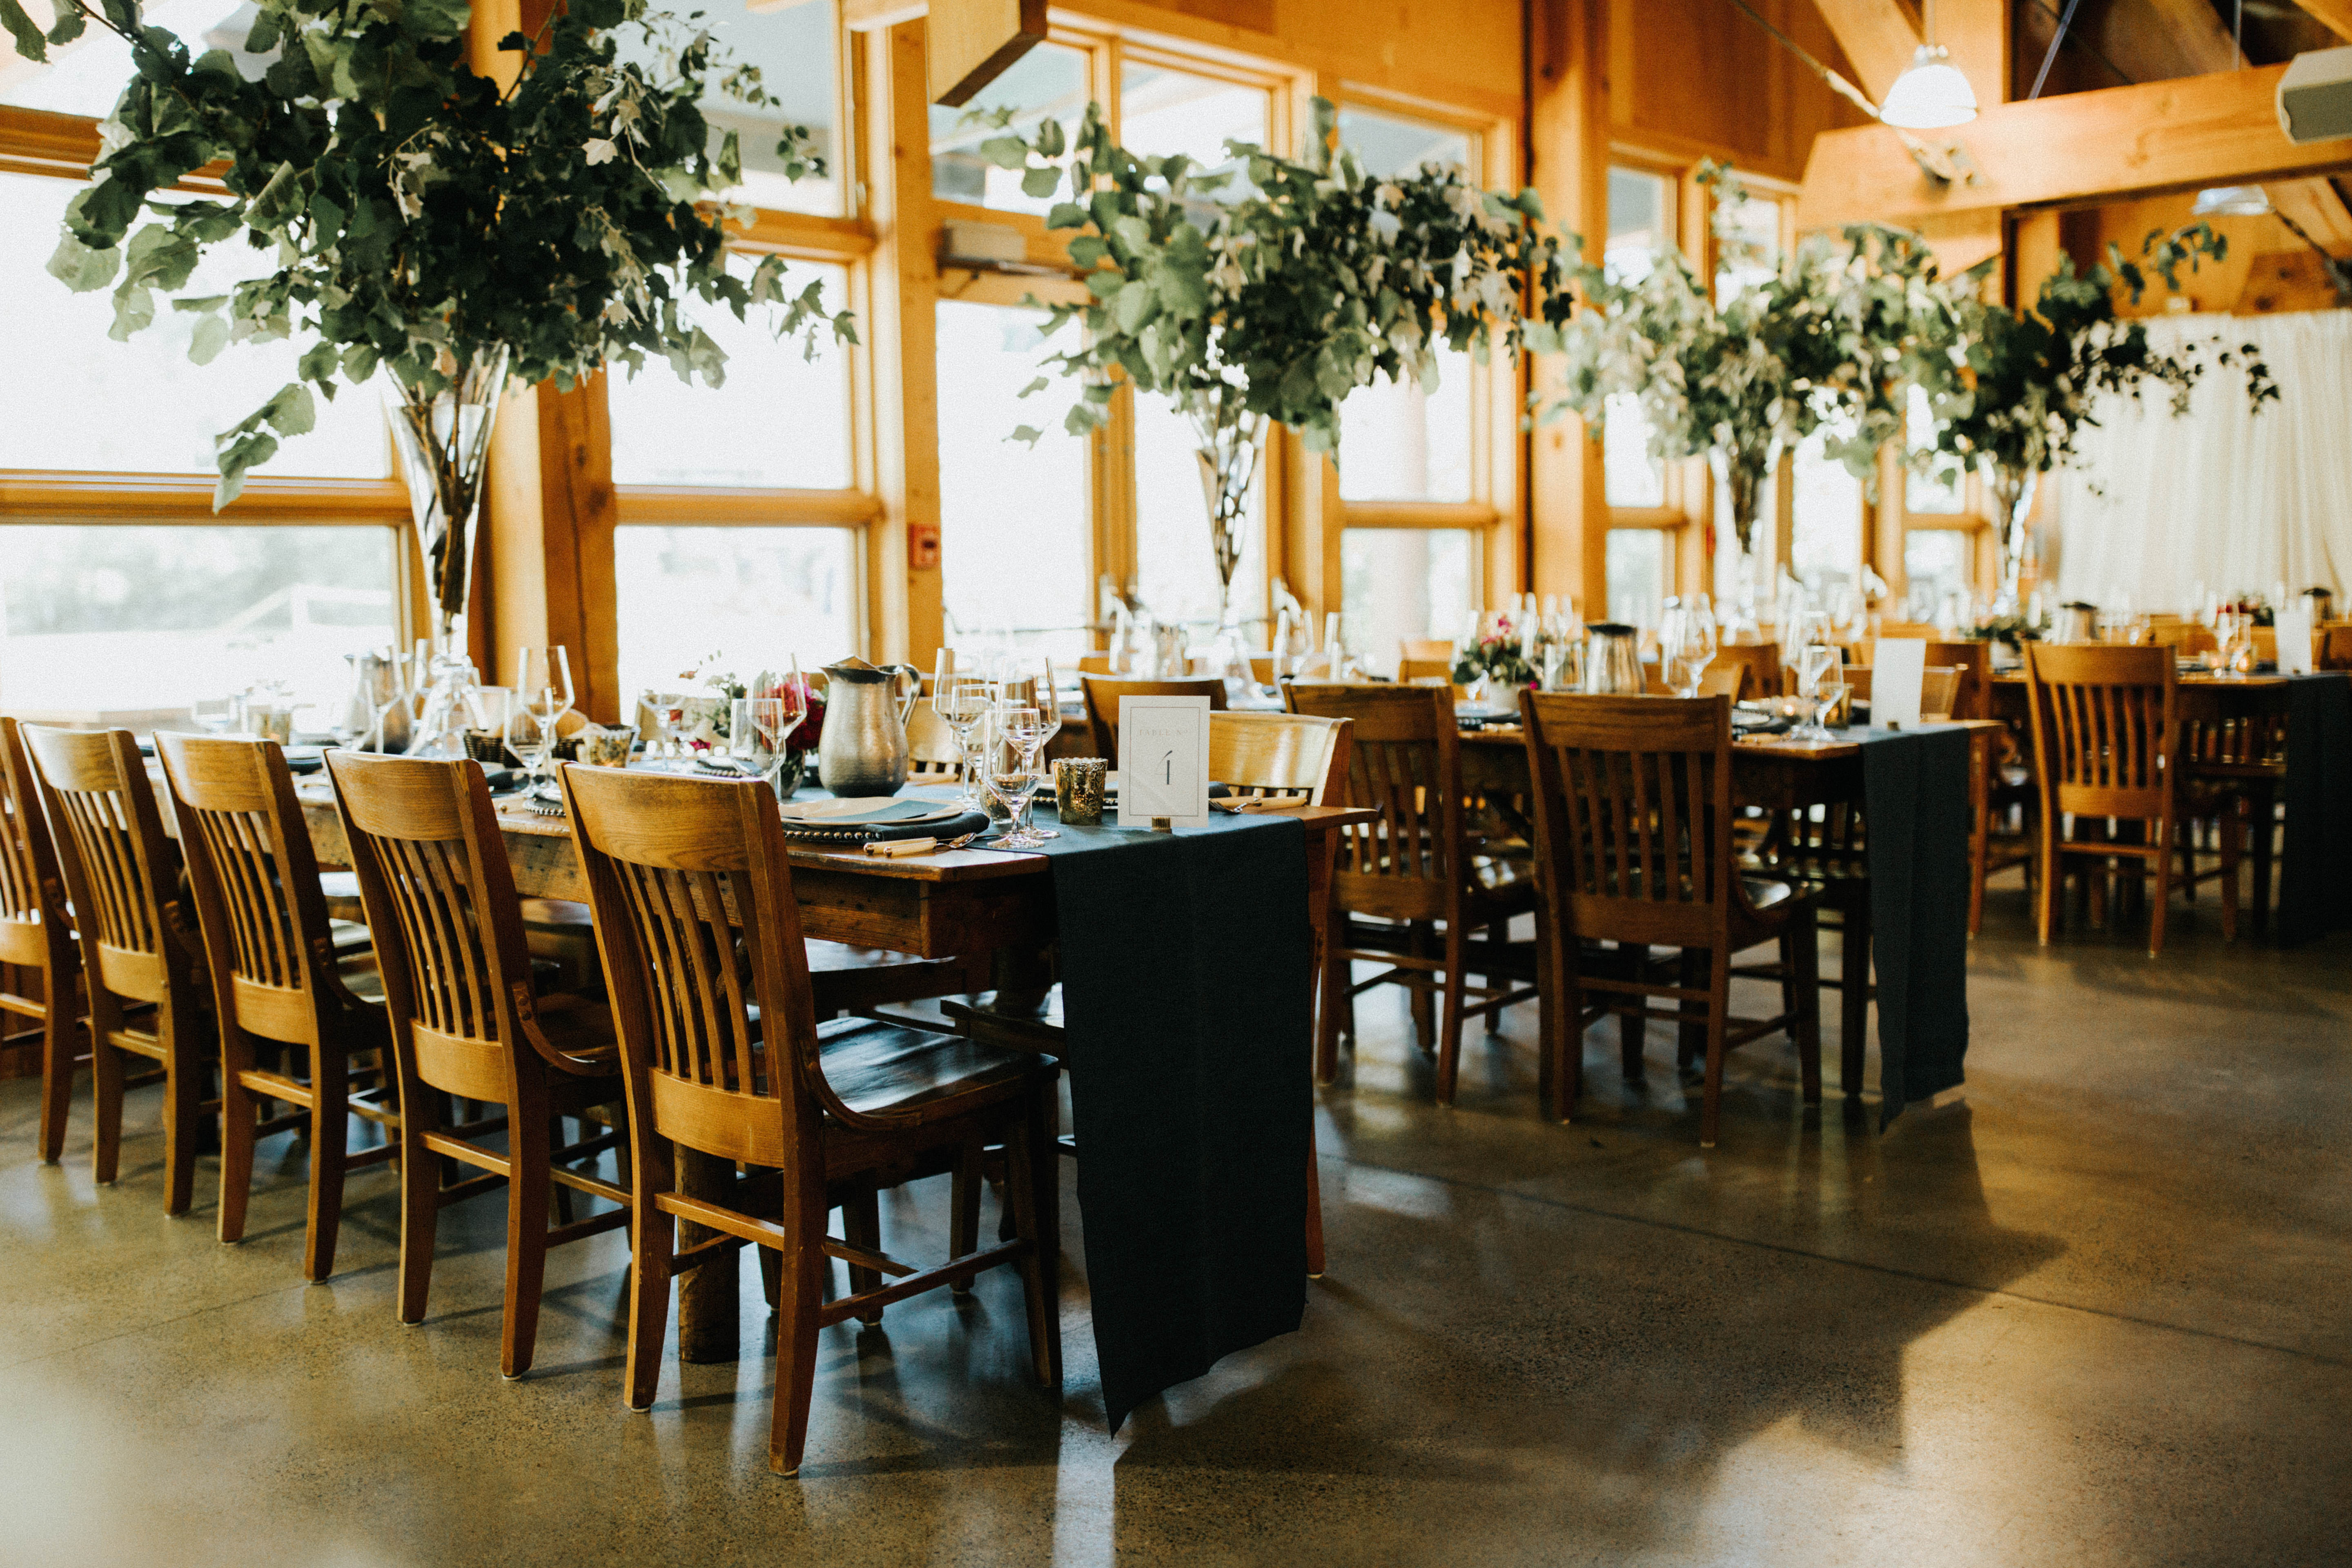 The Dining Hall at IslandWood. Three long tables are sewt with chairs and table settings. There are arrangements of greenery and florals above each table. Sunlight is streaming in from the windows behind the tables at IslandWood, an Outdoor Wedding Venue